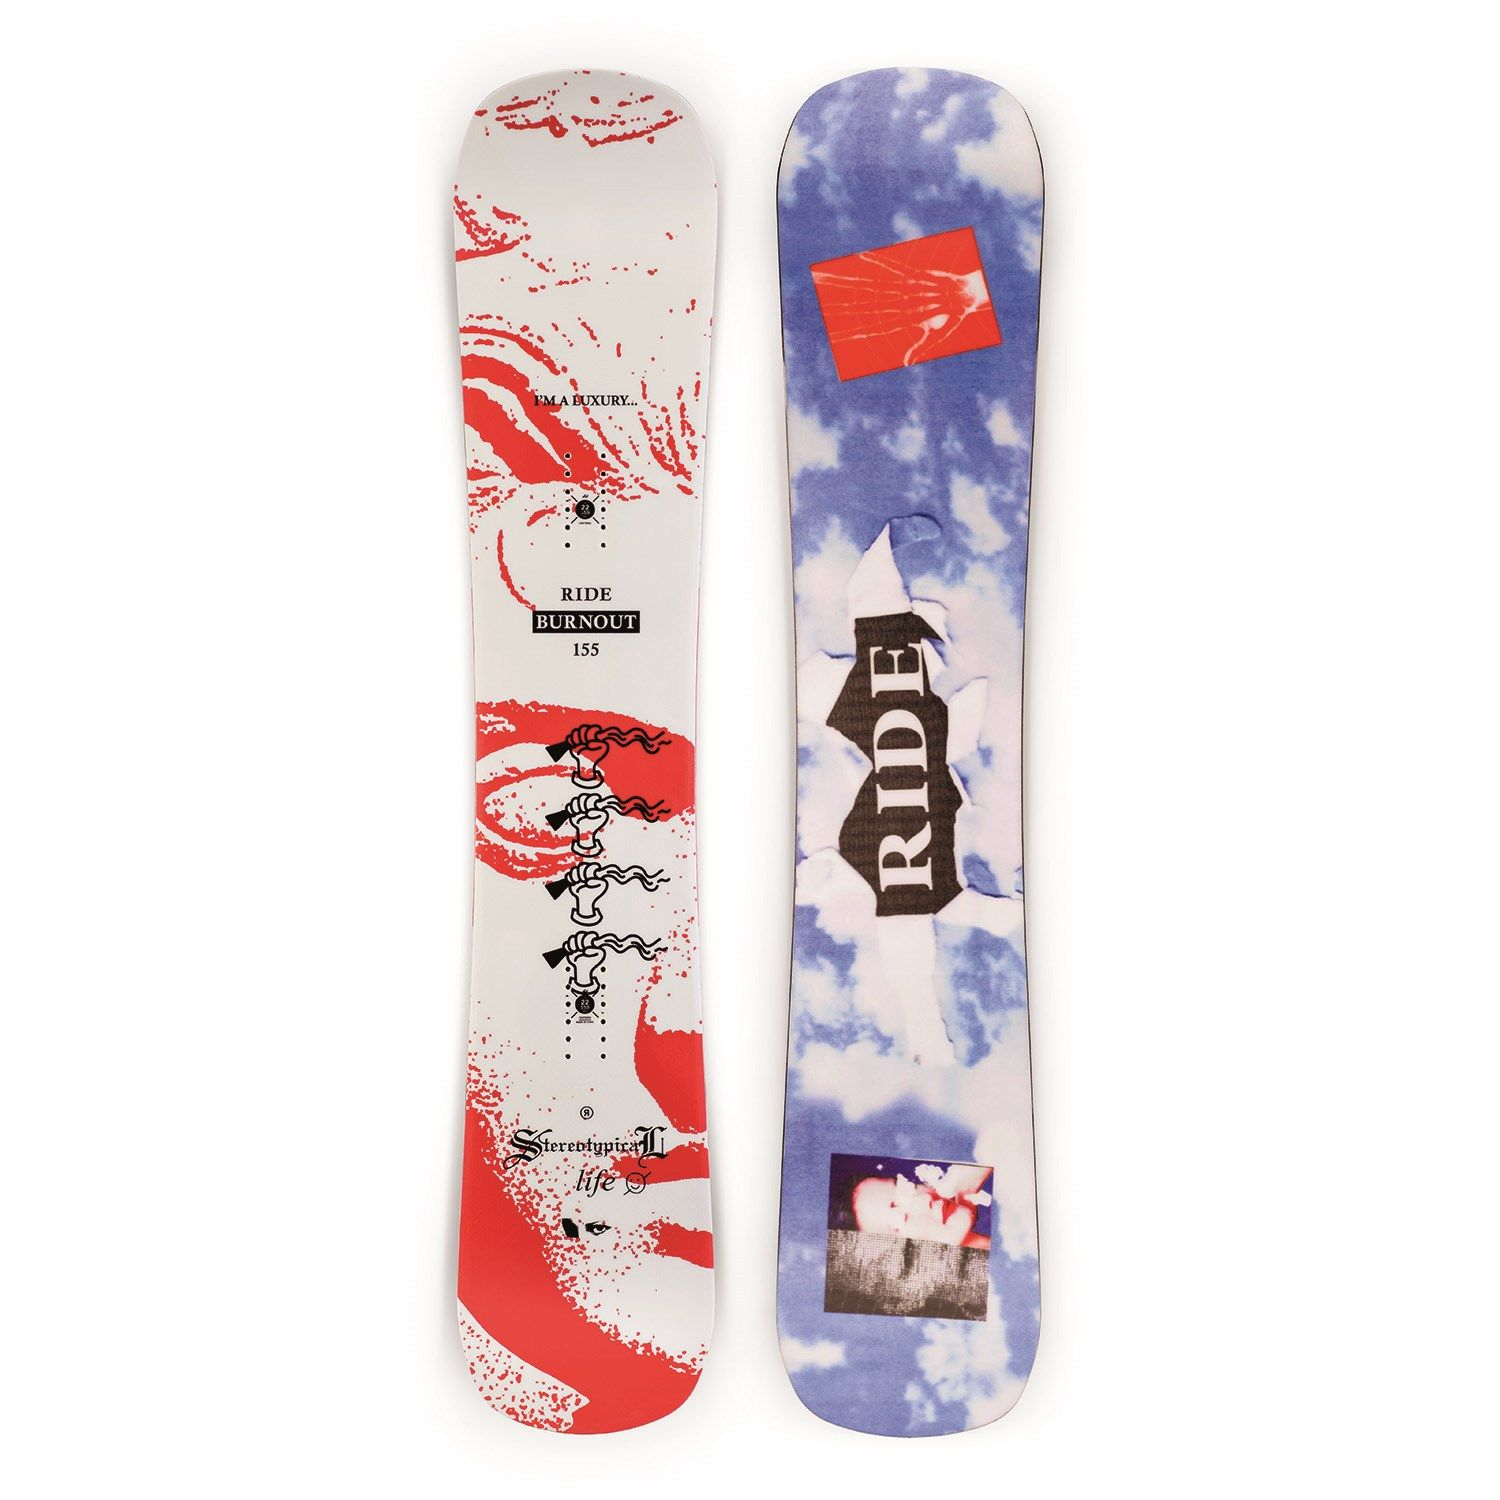 Top Snowboards You Can Get For Winter 1999666149